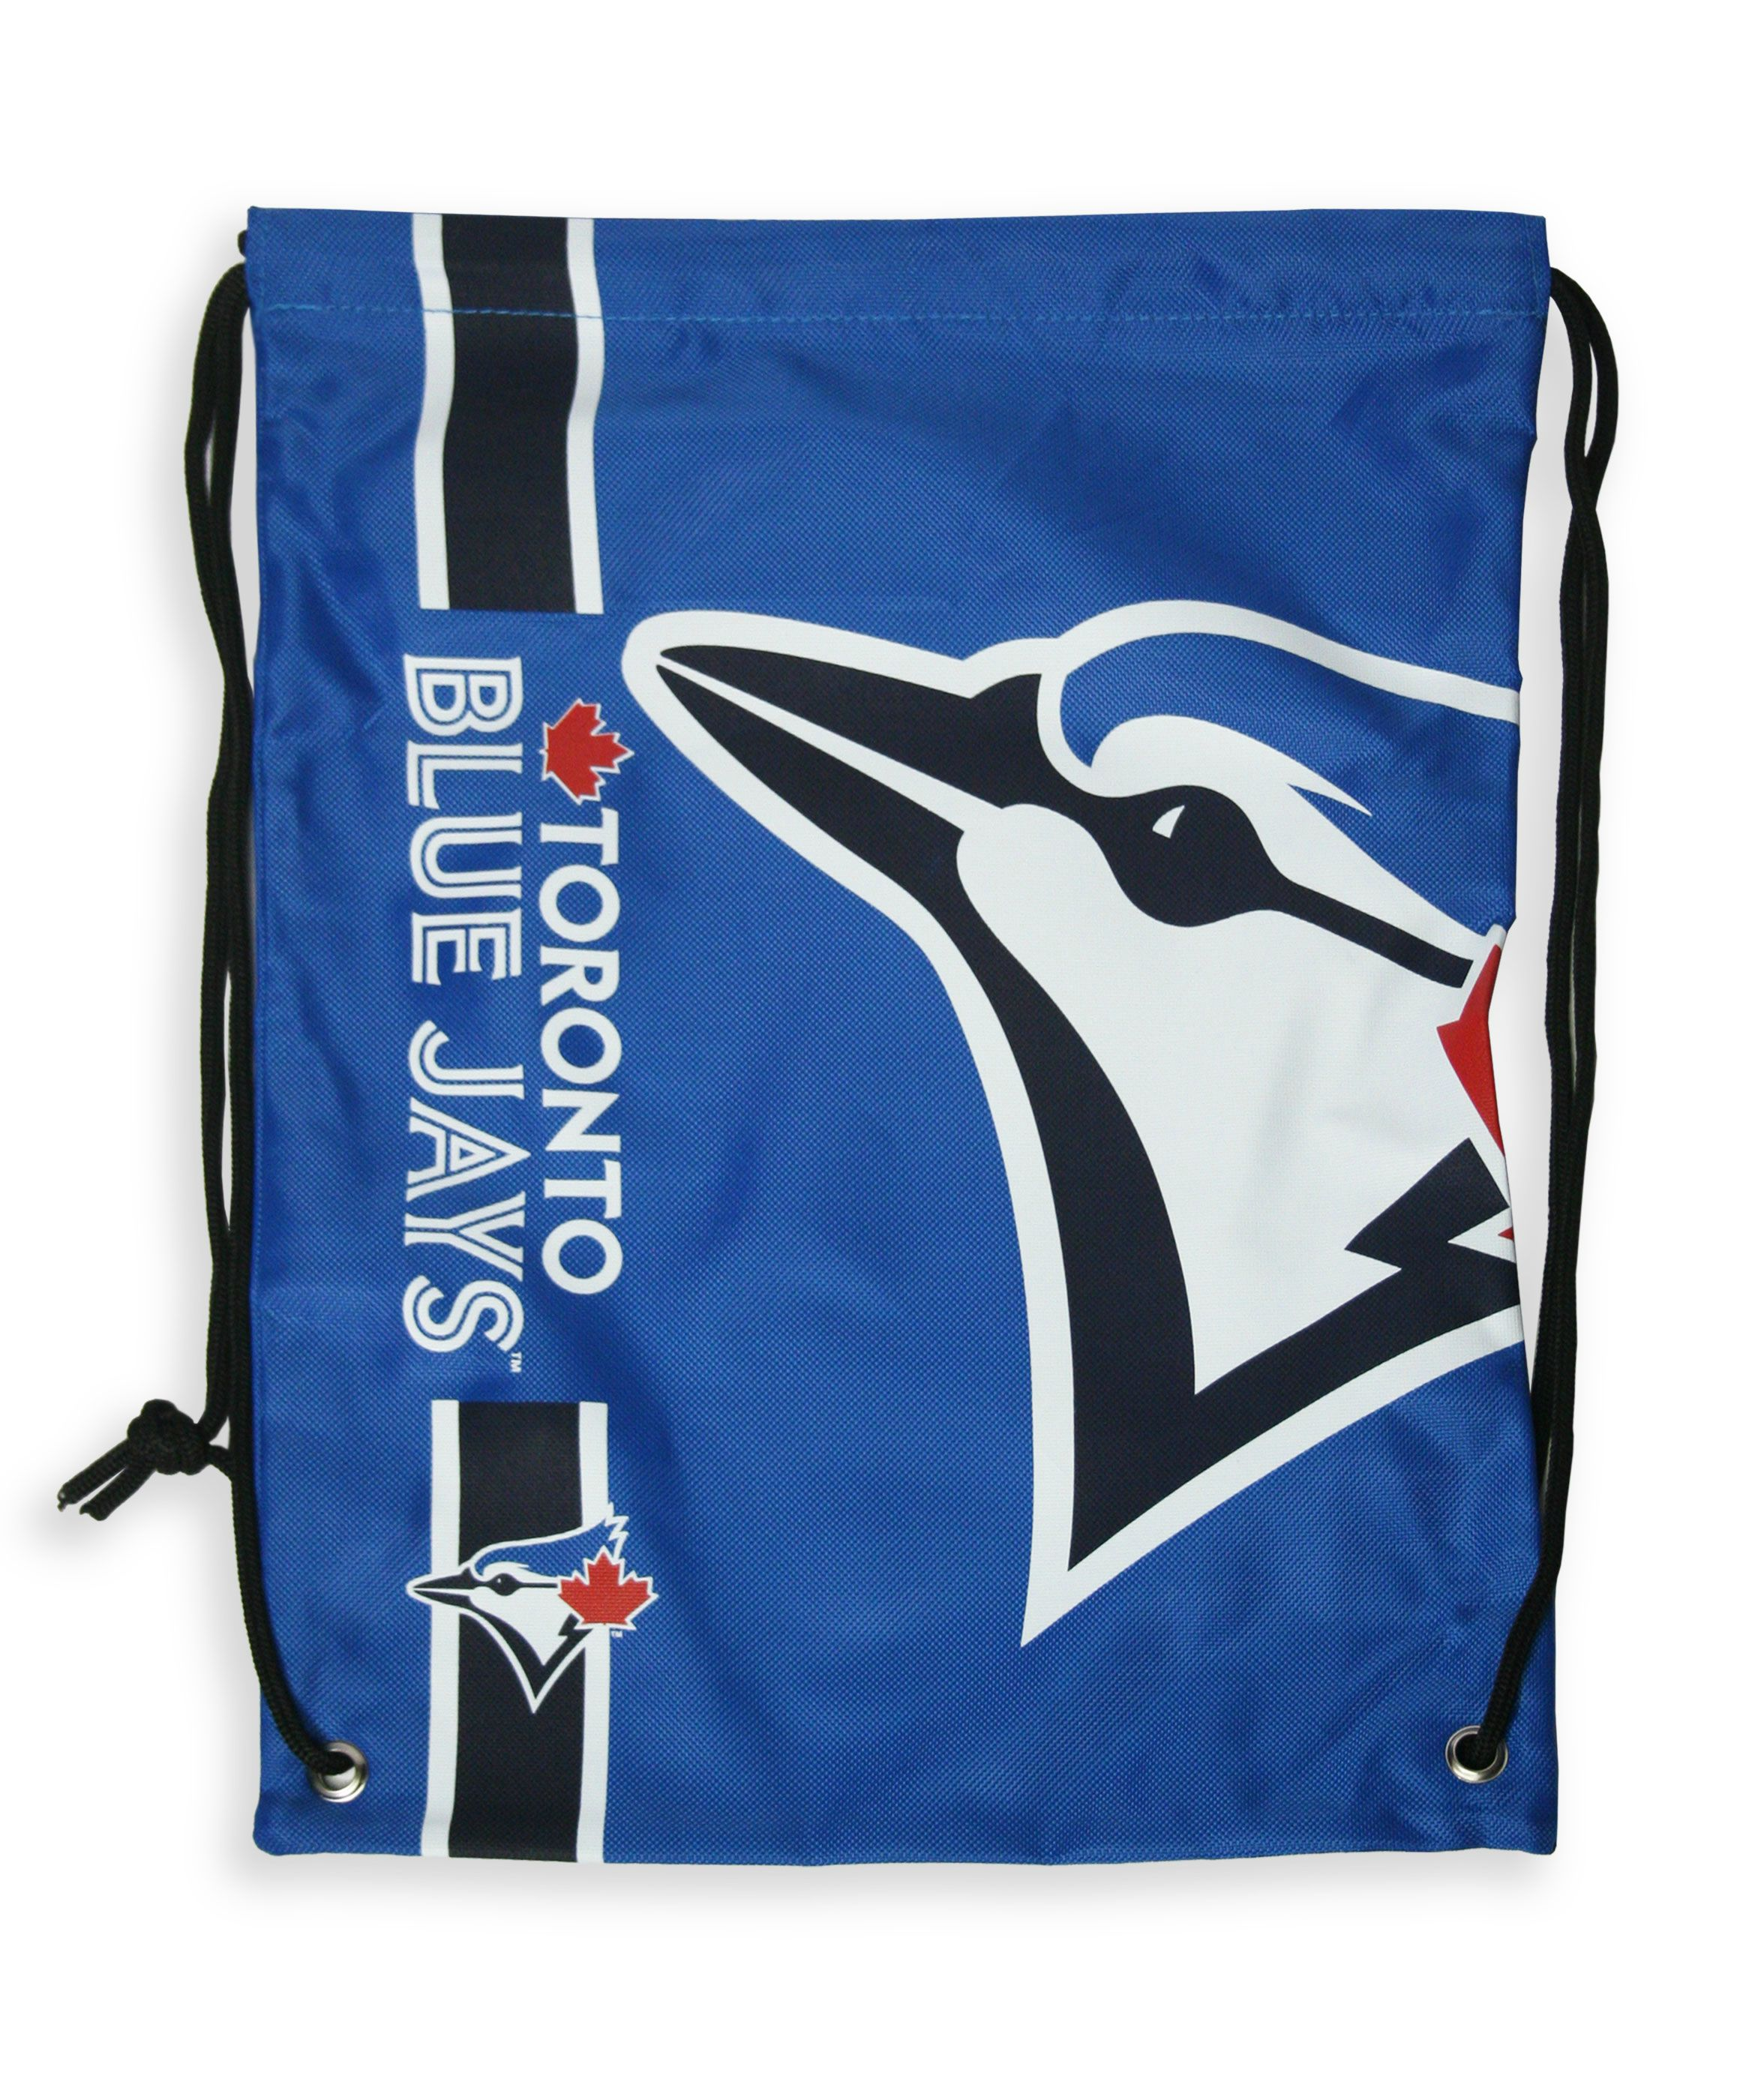 buy popular 6d707 da5f1 Forever Collectibles Toronto Blue Jays Big Logo Drawstring ...